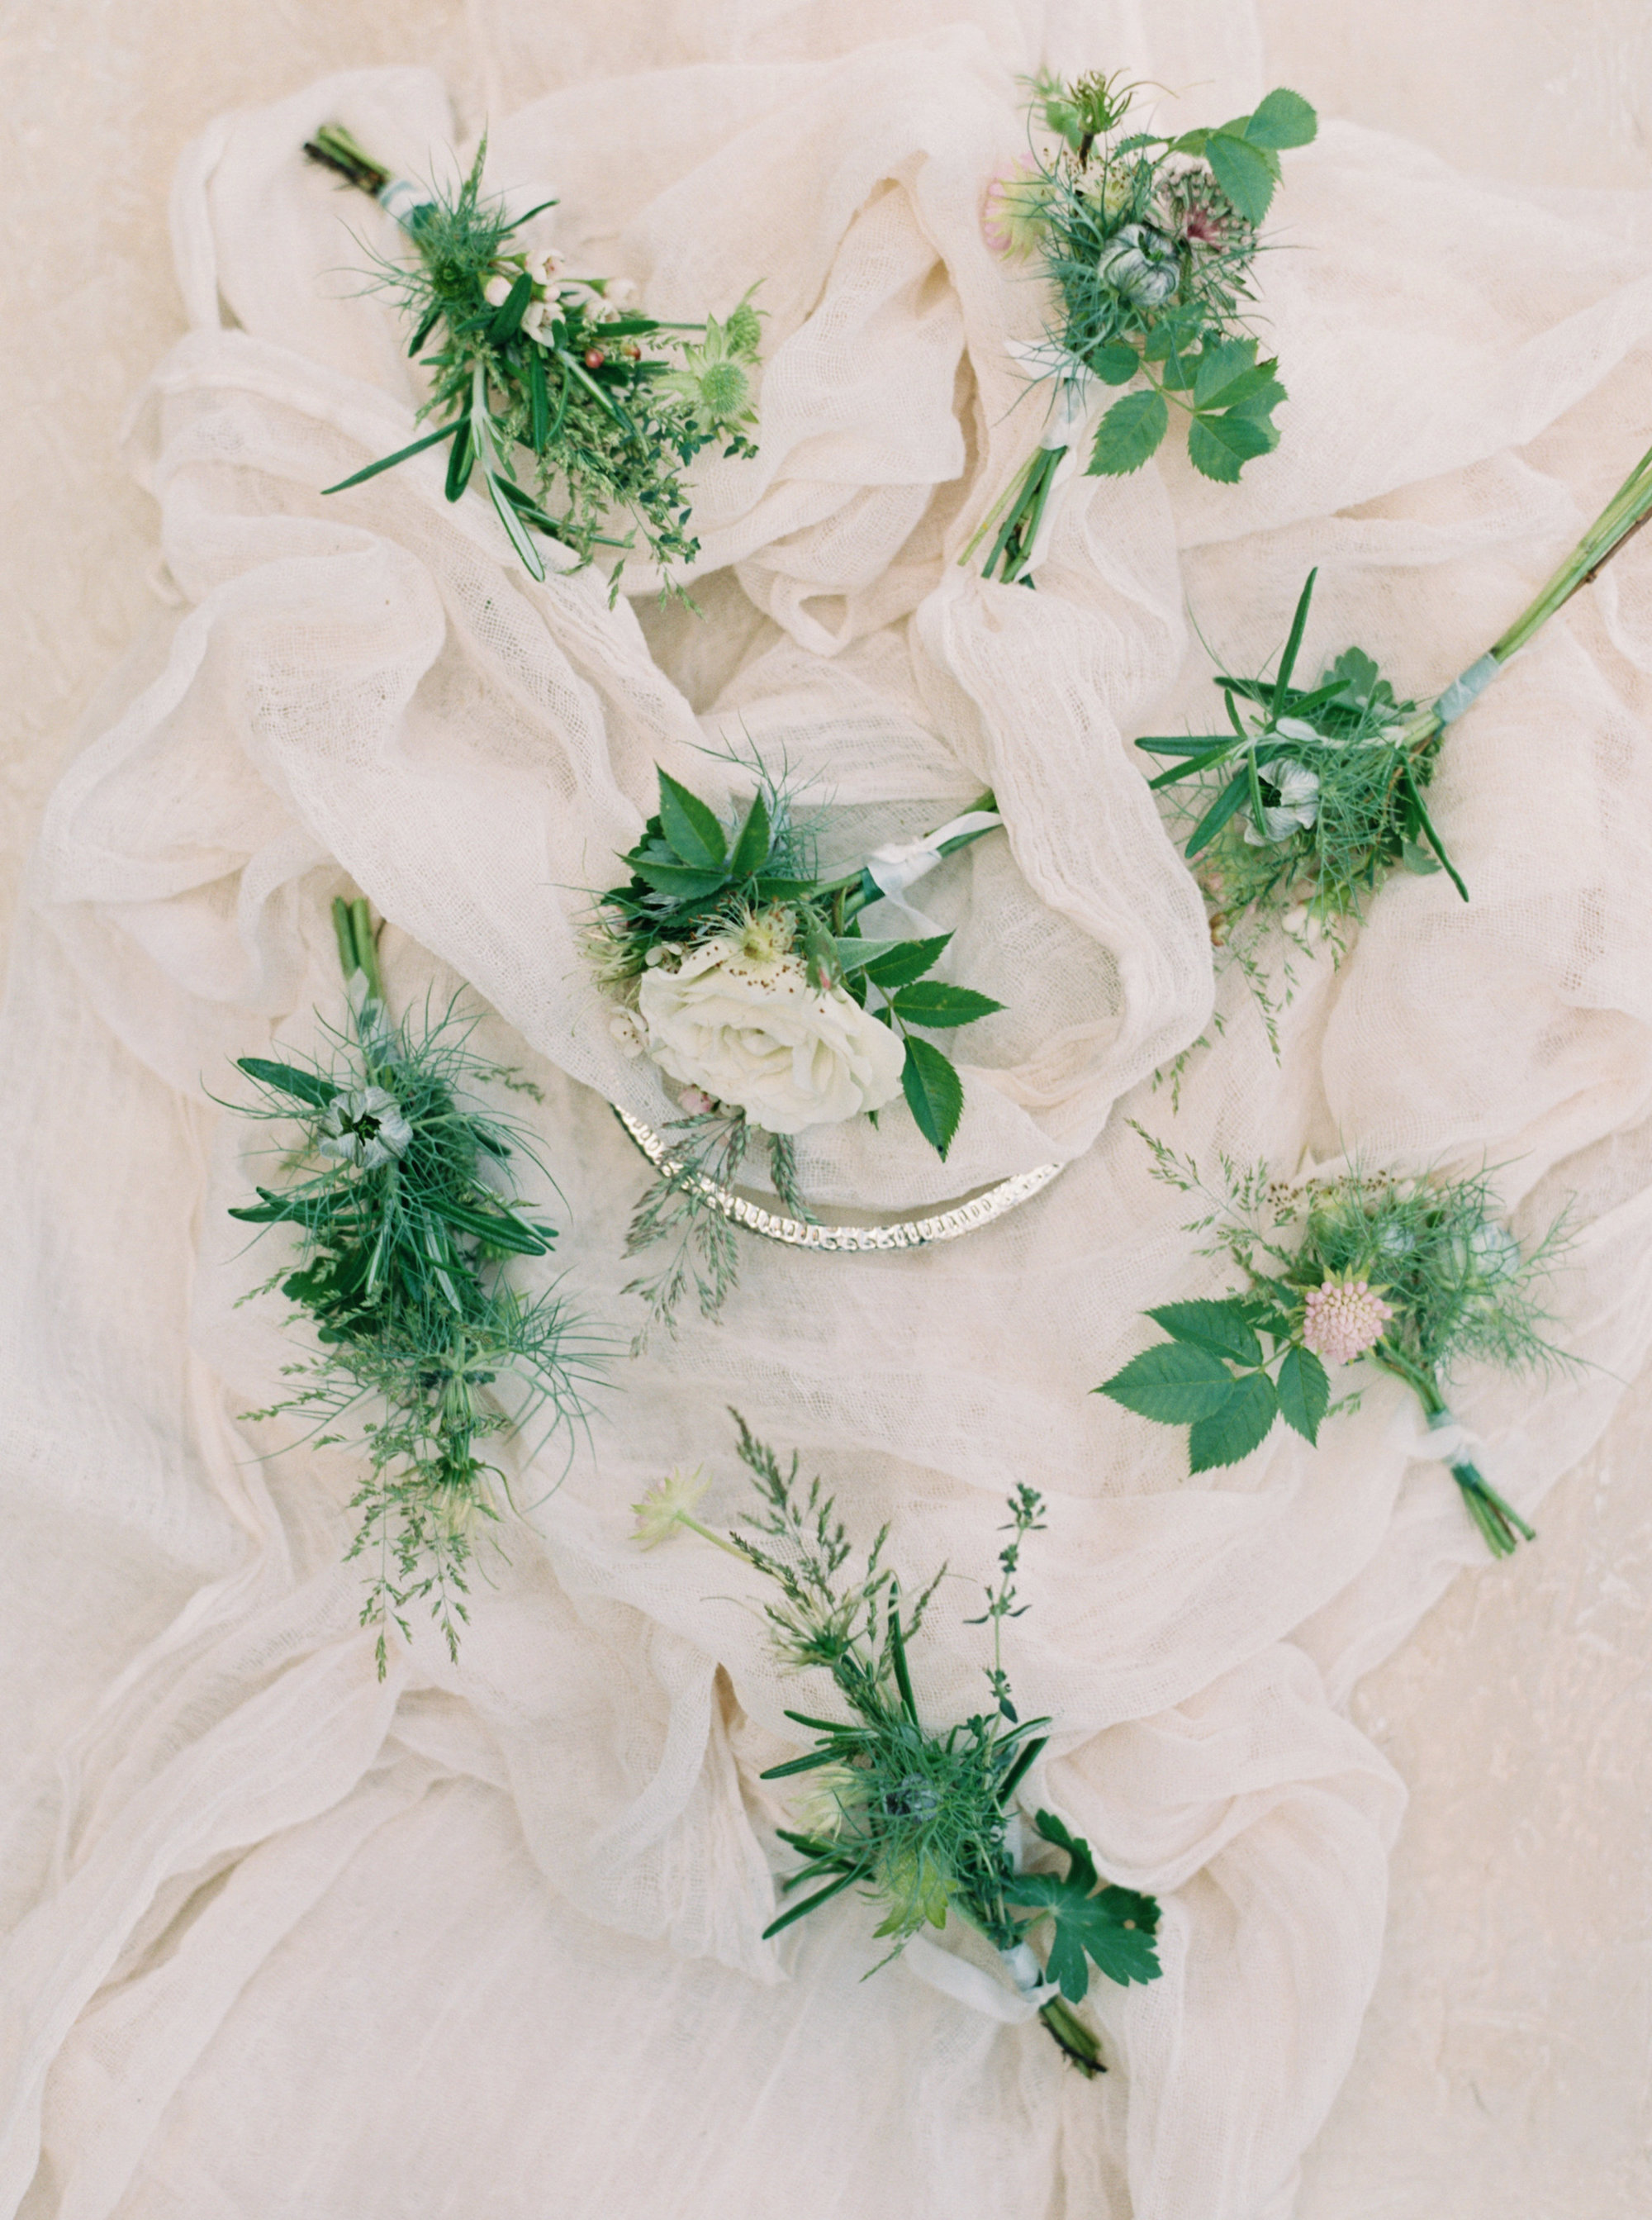 Luxury Wedding Planner UK | Jennifer & Timothy's English Country Manor Wedding | Soft Pink Pale Blue White and Silver Toned Green Neutral Tones American Bride North Cadbury Court | Nicole Colwell Photography 0504.jpg